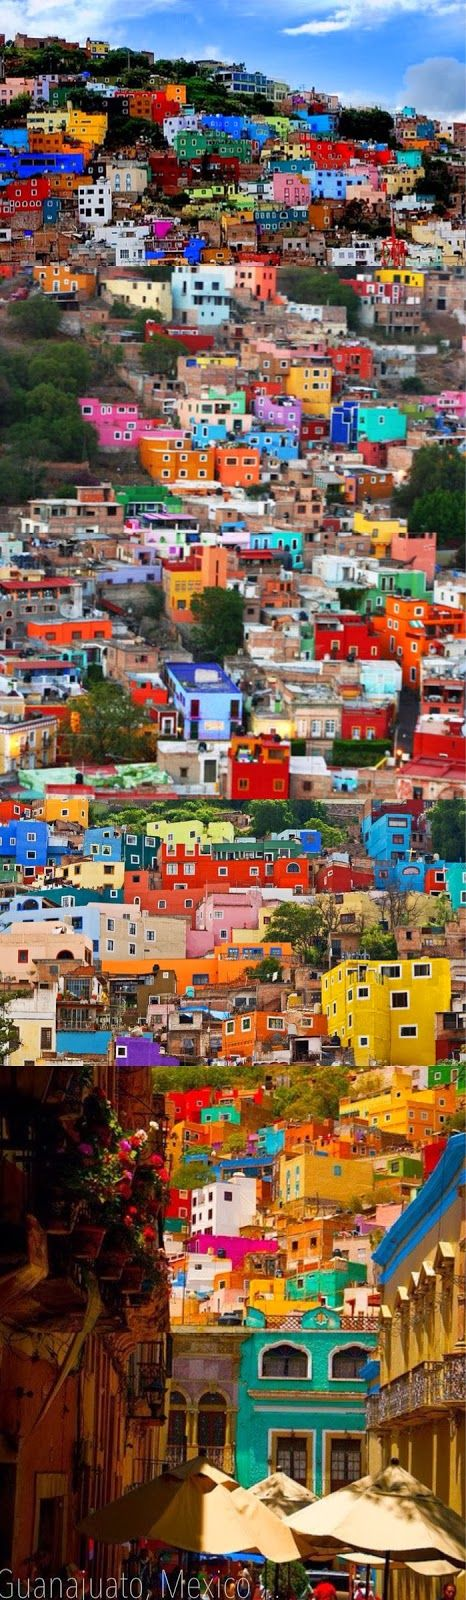 Guanajuato, Mexico. Best Destination| Fun Trip| DIY Tutorial| Save Money on trips| Cheap Destination